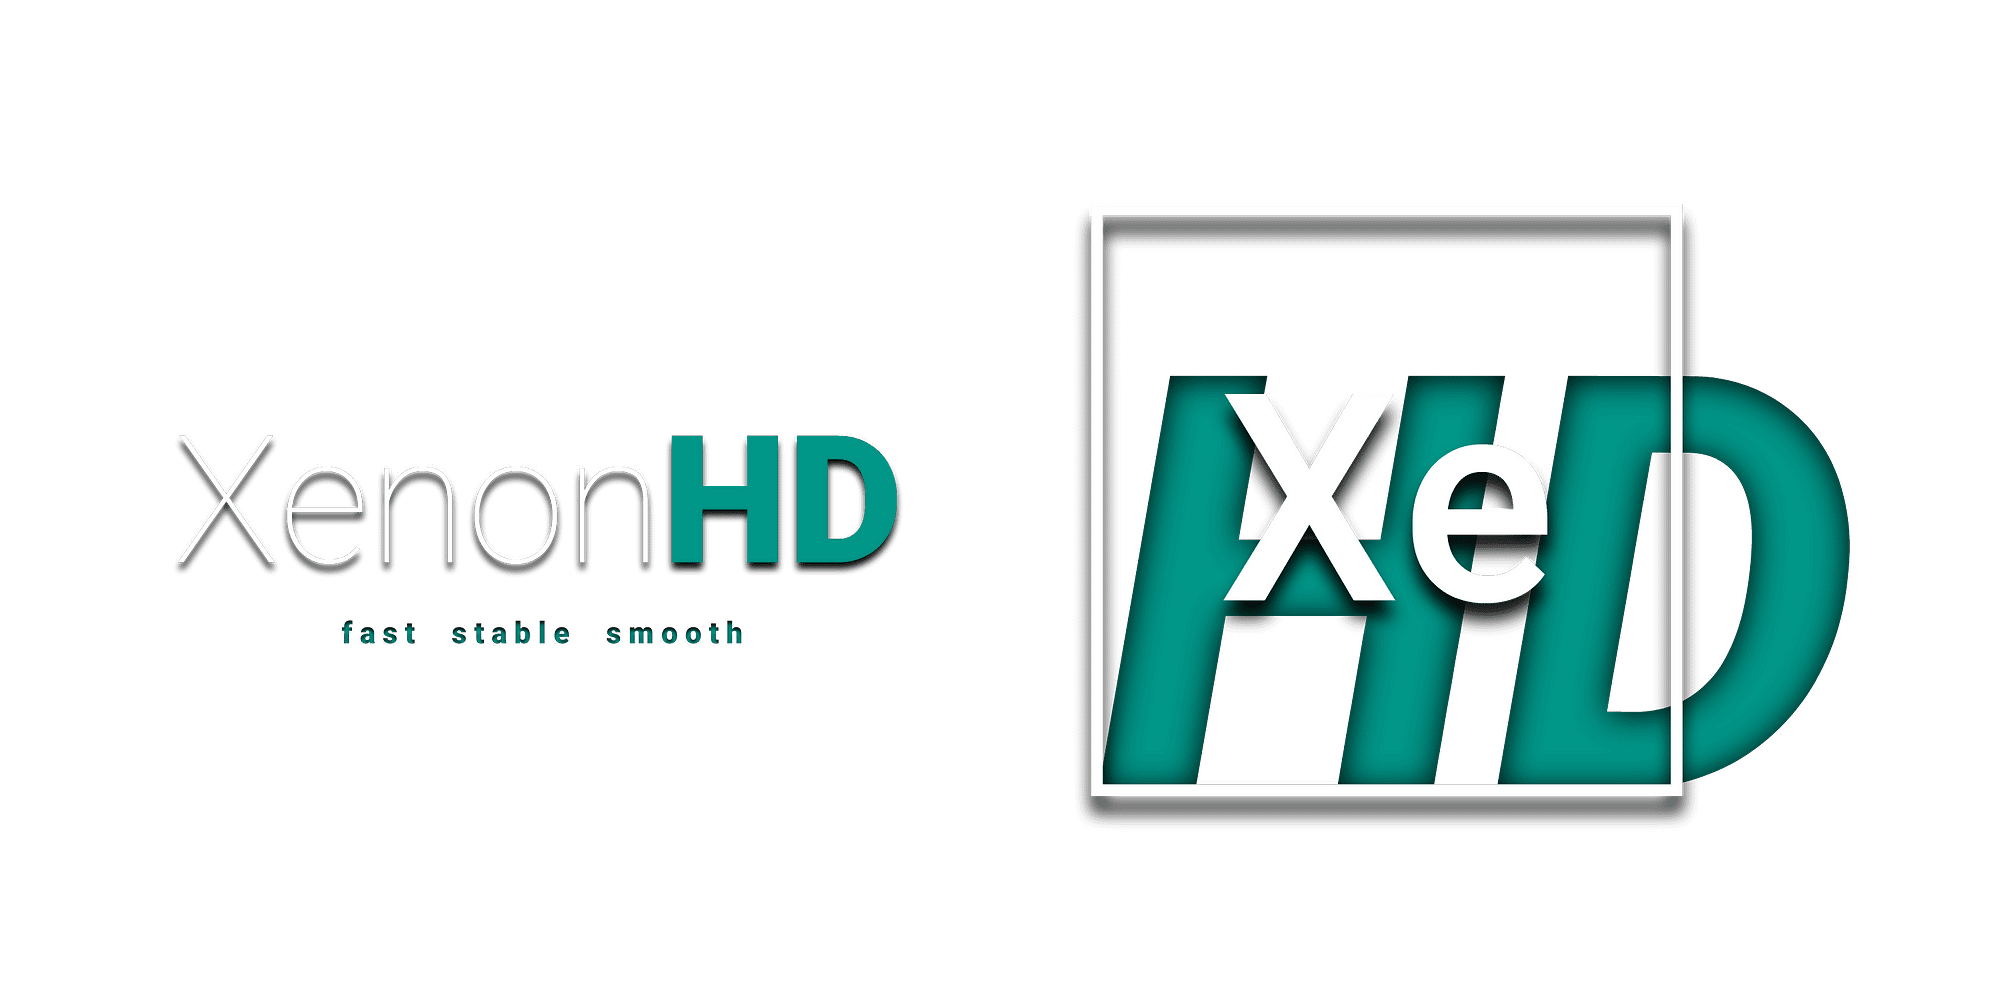 Custom Rom for Android - XenonHD ROM